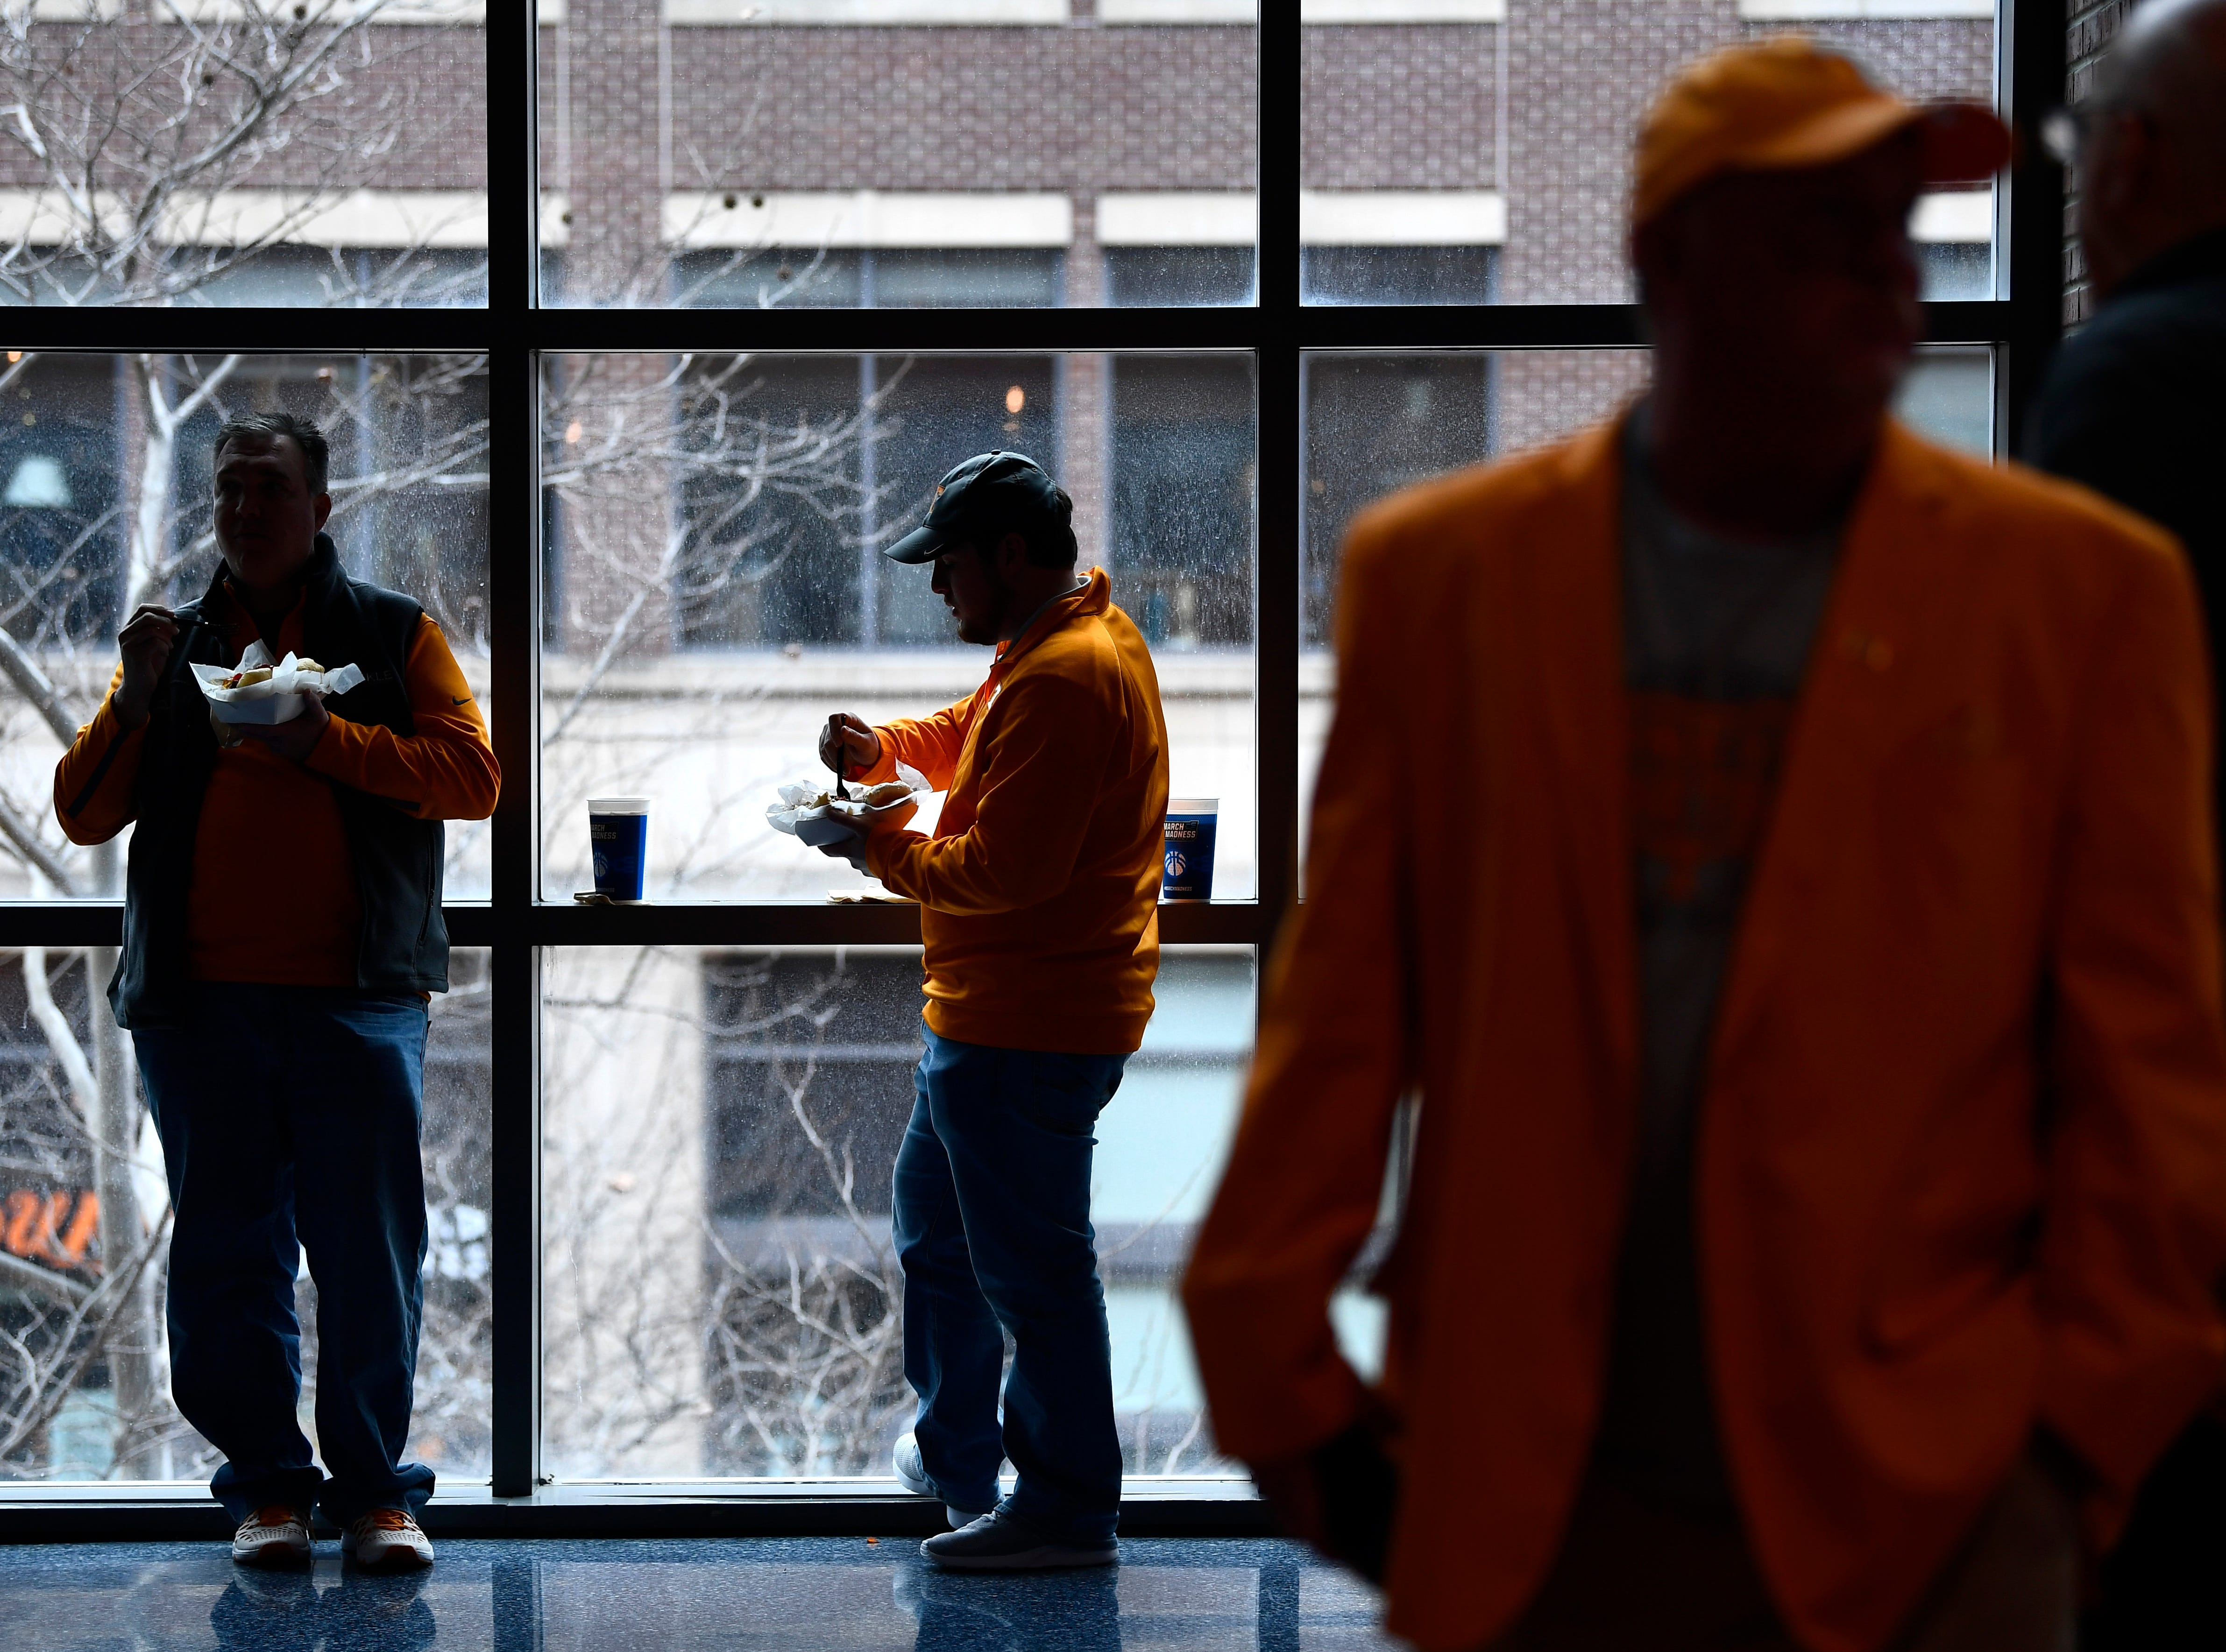 Tennessee fans mingle on the concourse before the UT basketball game against the Colgate Raiders in the first round of the NCAA Tournament at Nationwide Arena in Columbus, Ohio, on Friday, March 22, 2019.